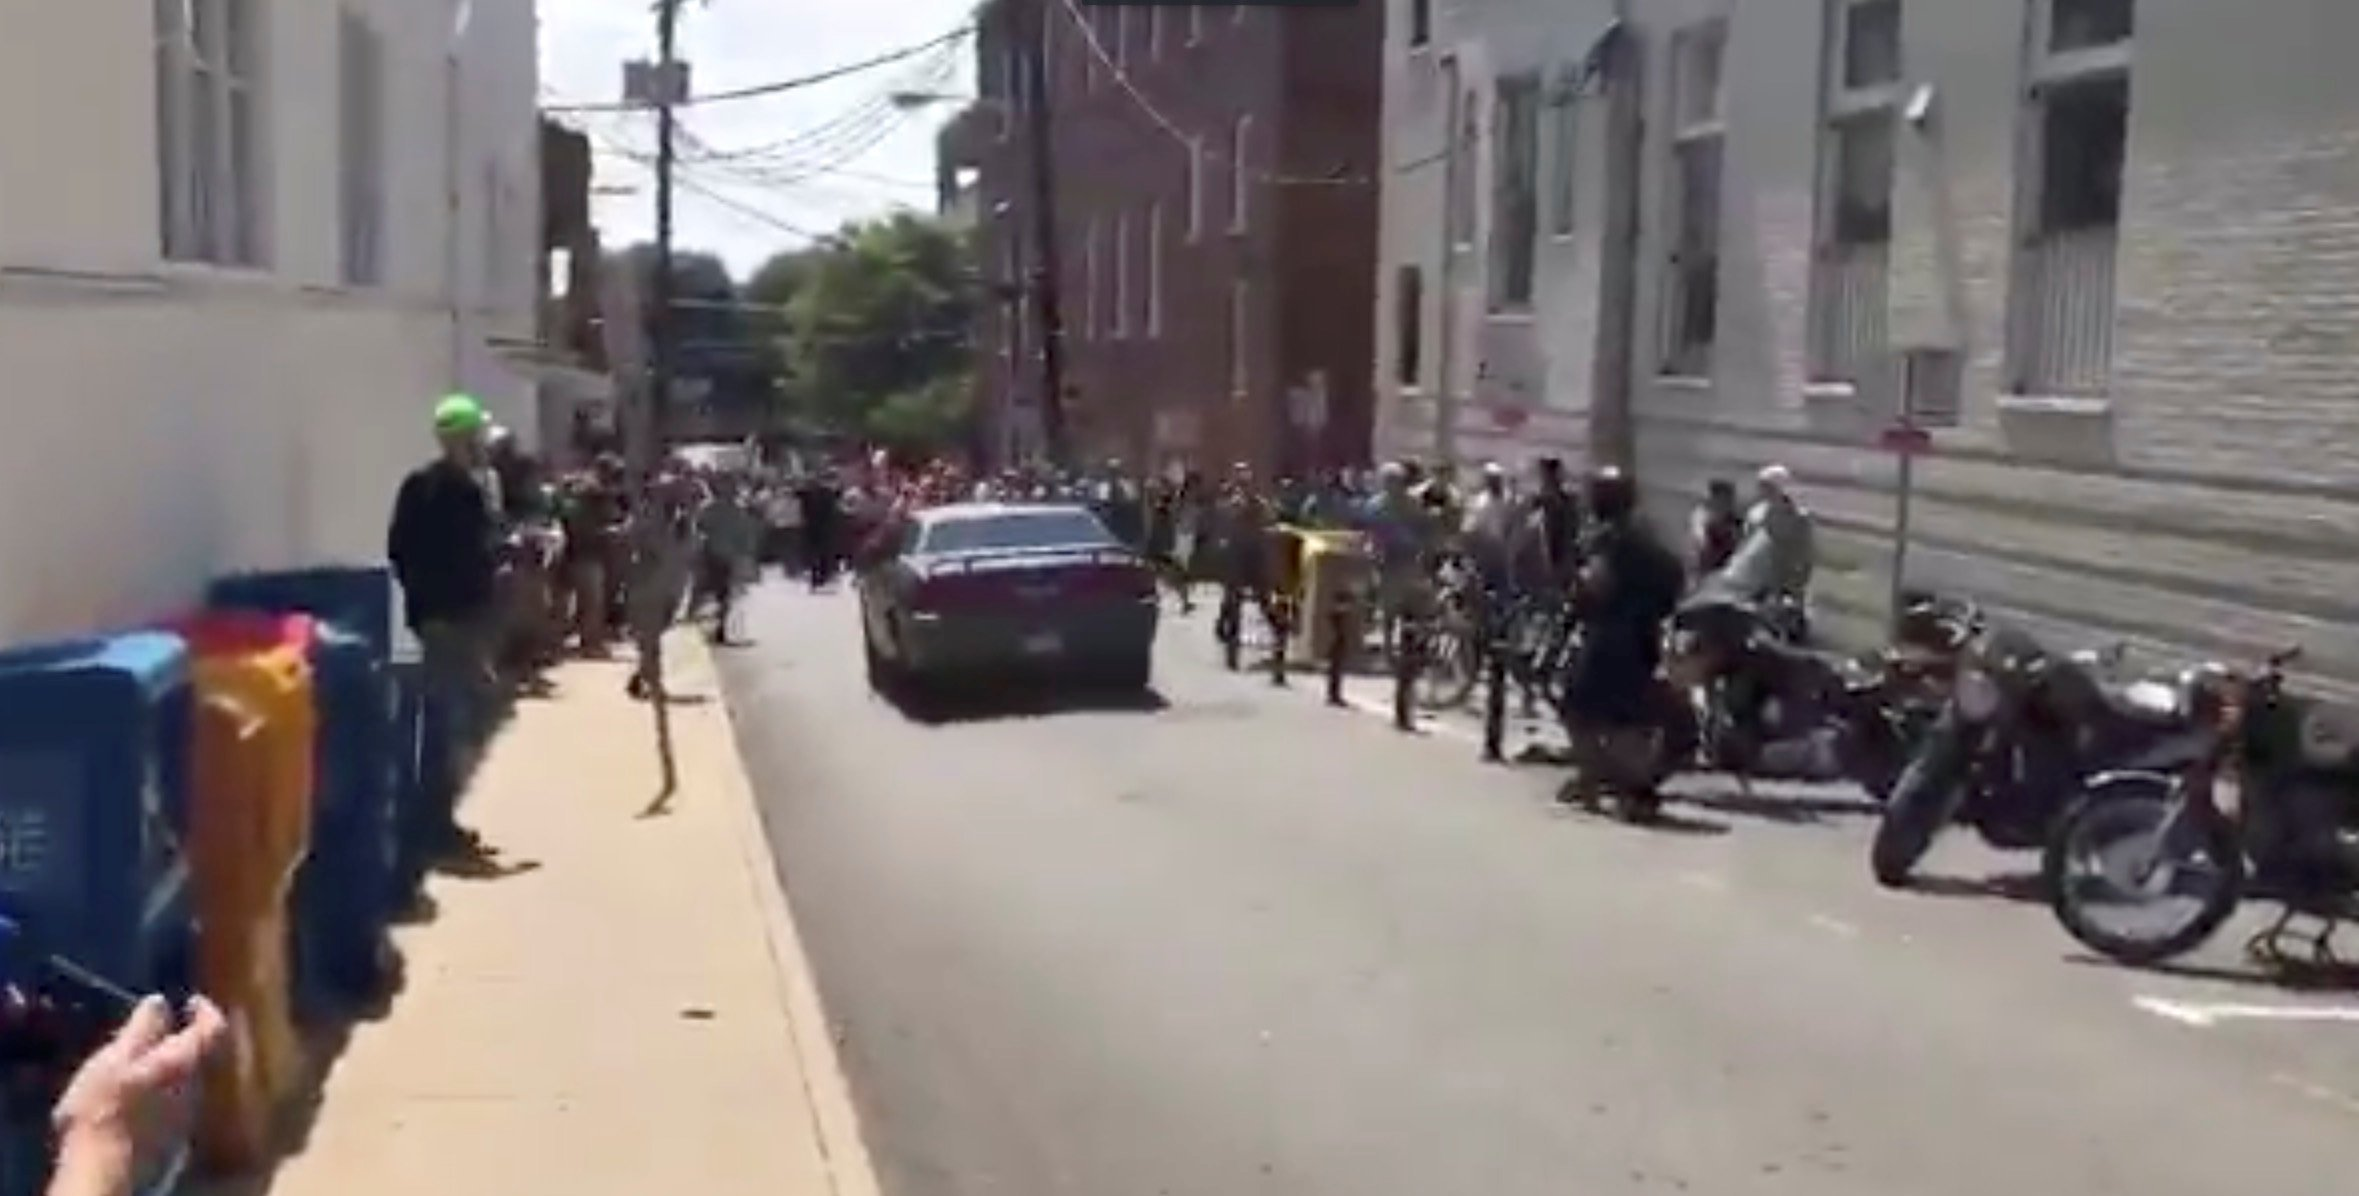 A vehicle is seen before plowing into the crowd gathered on a street in Charlottesville, Virginia, U.S., after police broke up a clash between white nationalists and counter-protesters, August 12, 2017, in this still image from a video obtained from social media. Courtesy of Brennan Gilmore